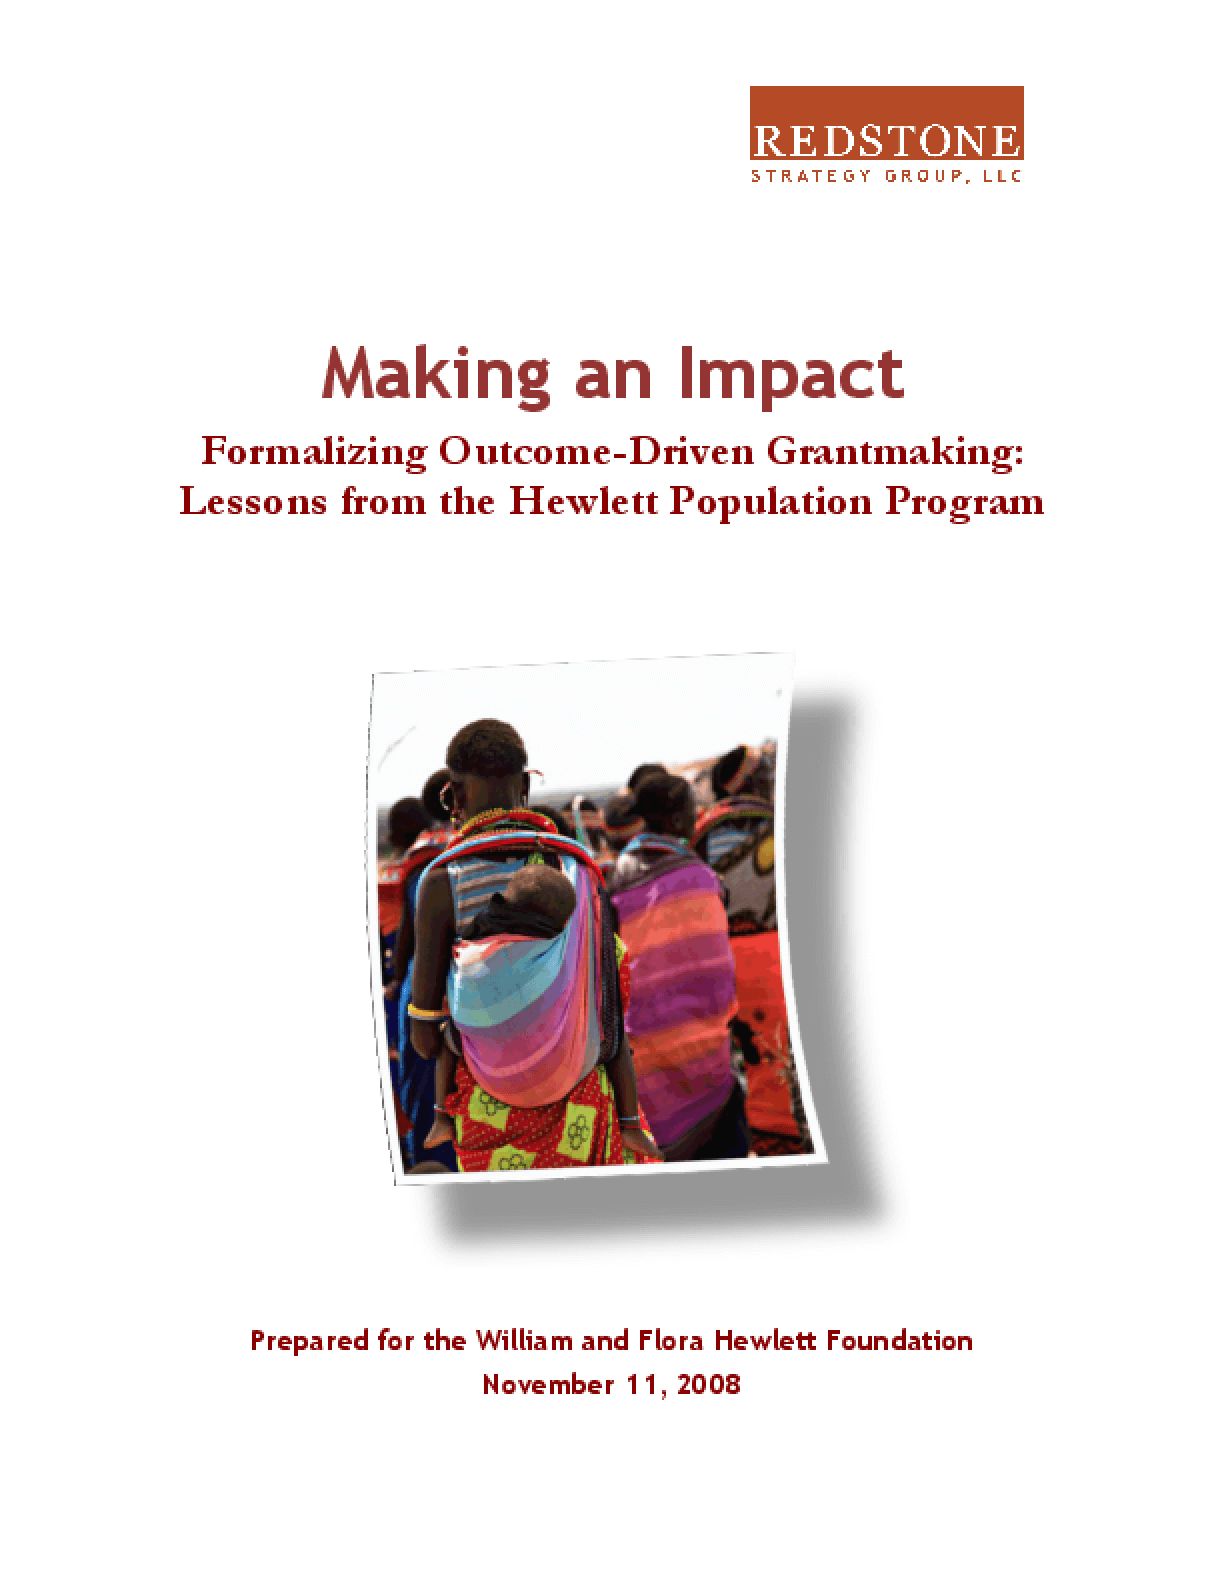 Making an Impact: Formalizing Outcome-Driven Grantmaking: Lessons From the Hewlett Population Program